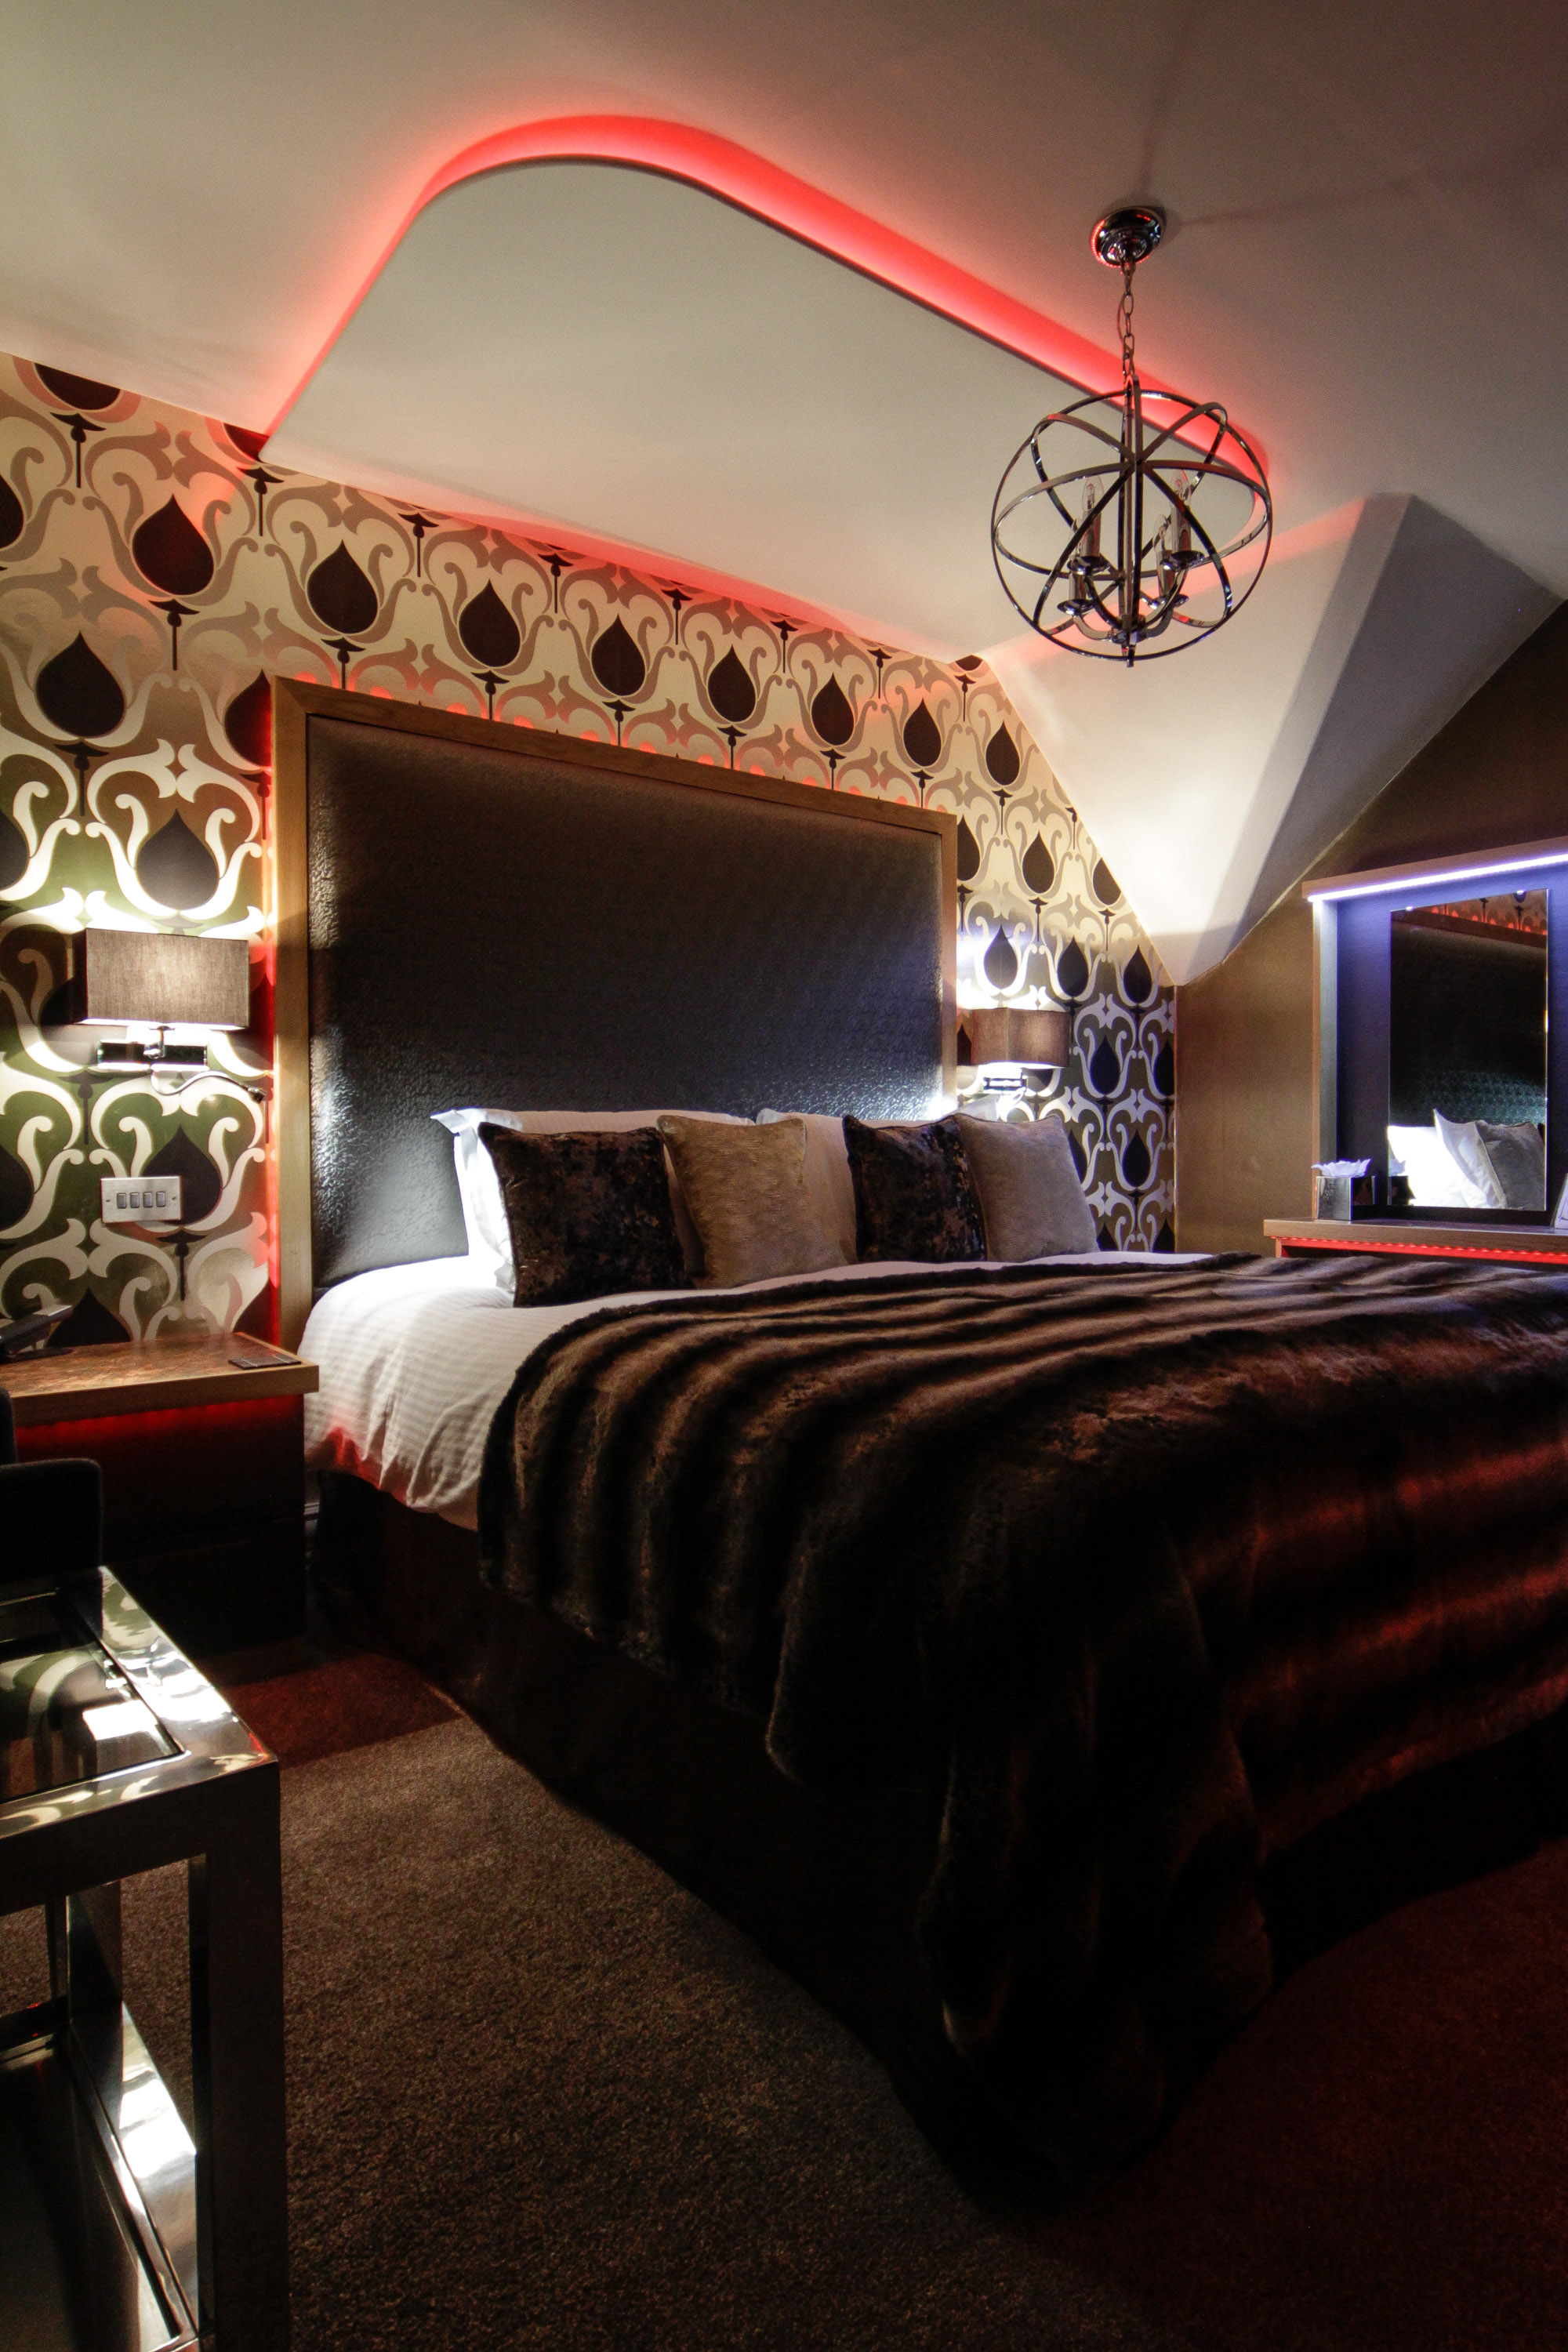 Fancy Hotel Room: Win A Night For 2 Couples In Luxury